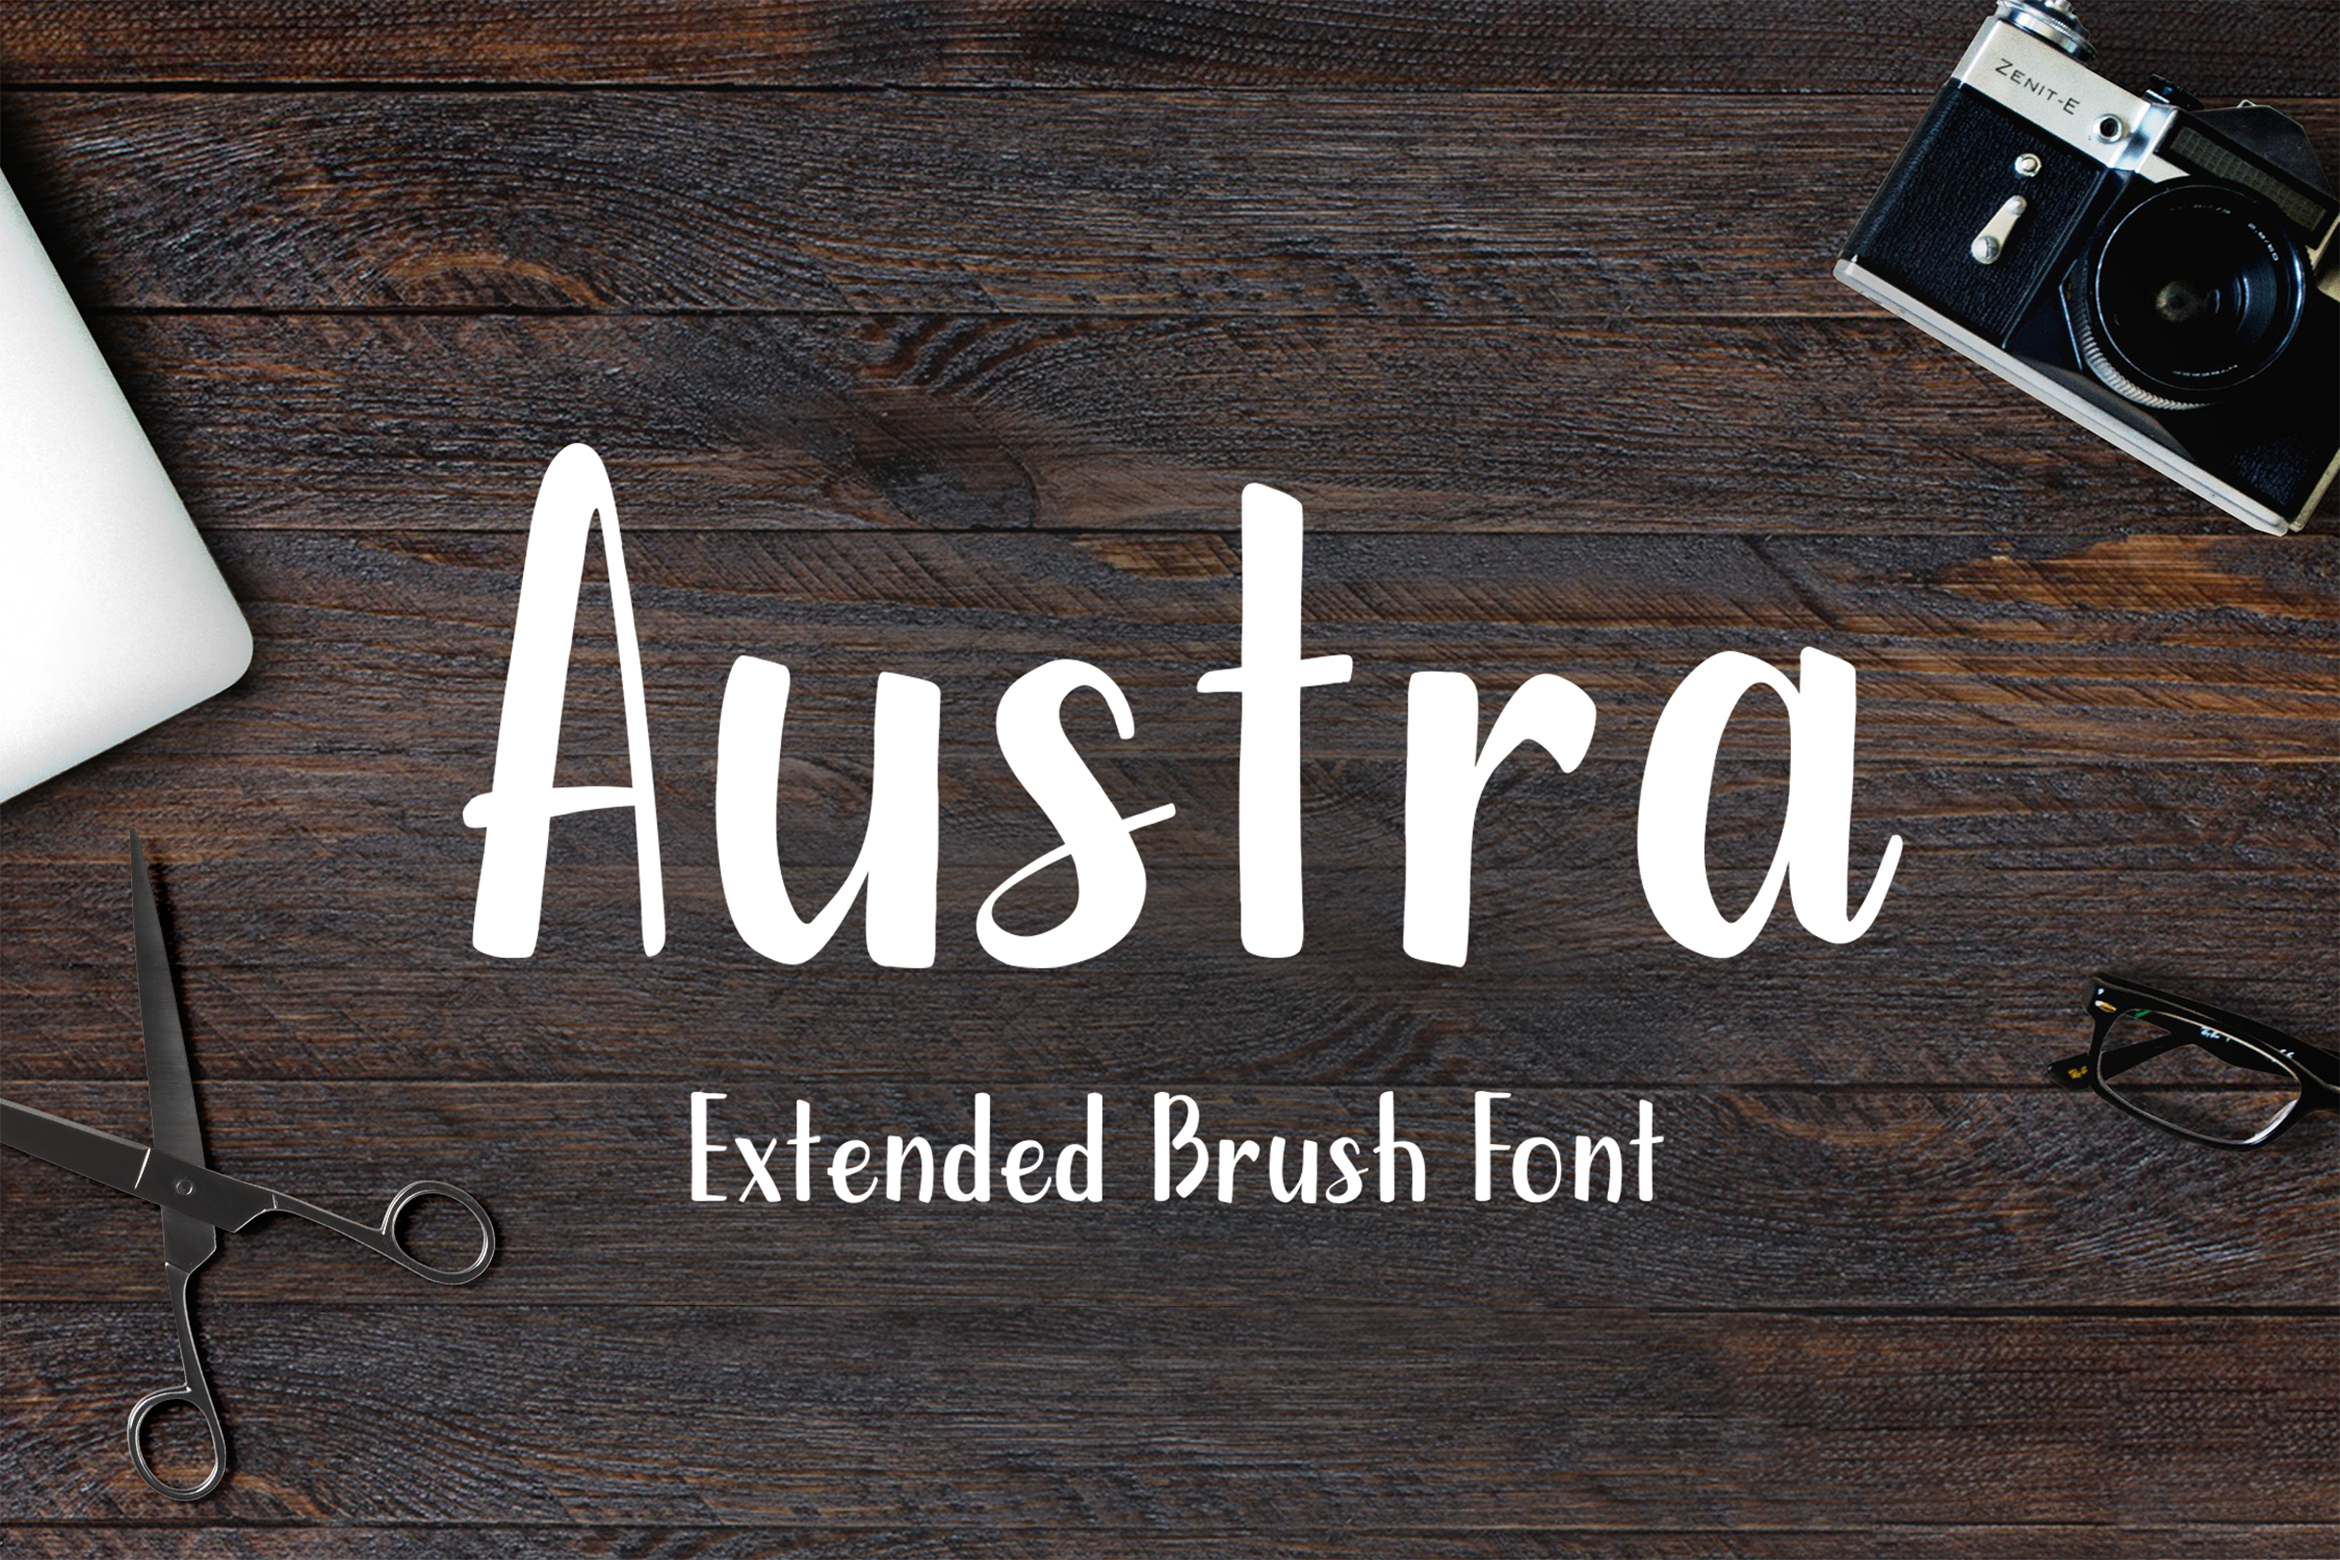 Austra Extended Brush Font example image 1